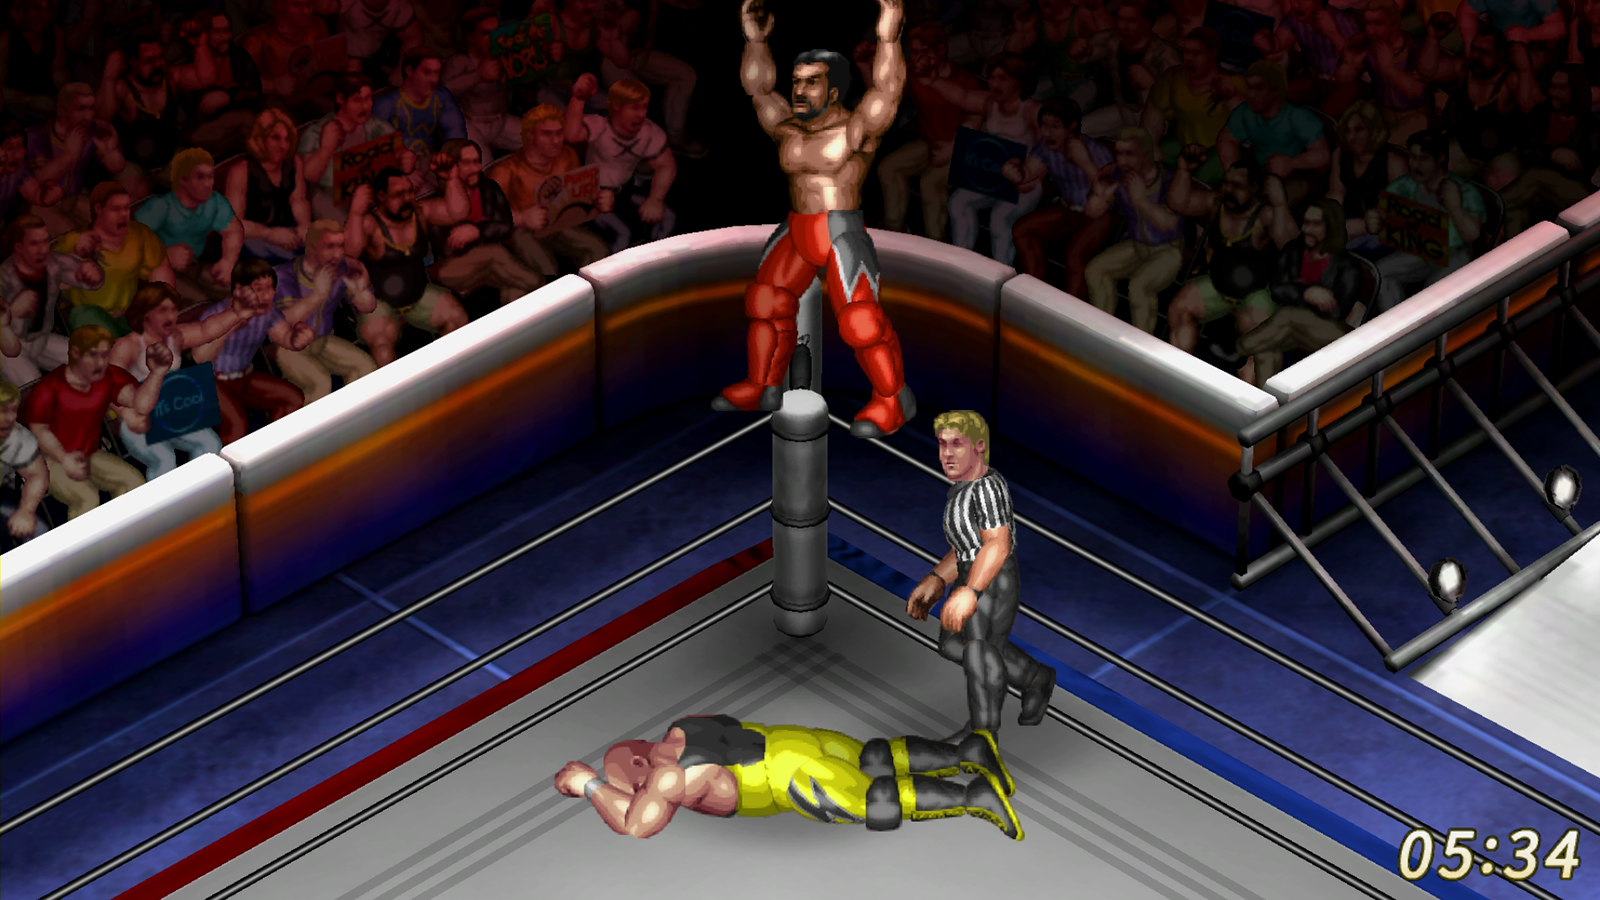 'Fire Pro Wrestling World' Is Great For All the Reasons the WWE Games Suck